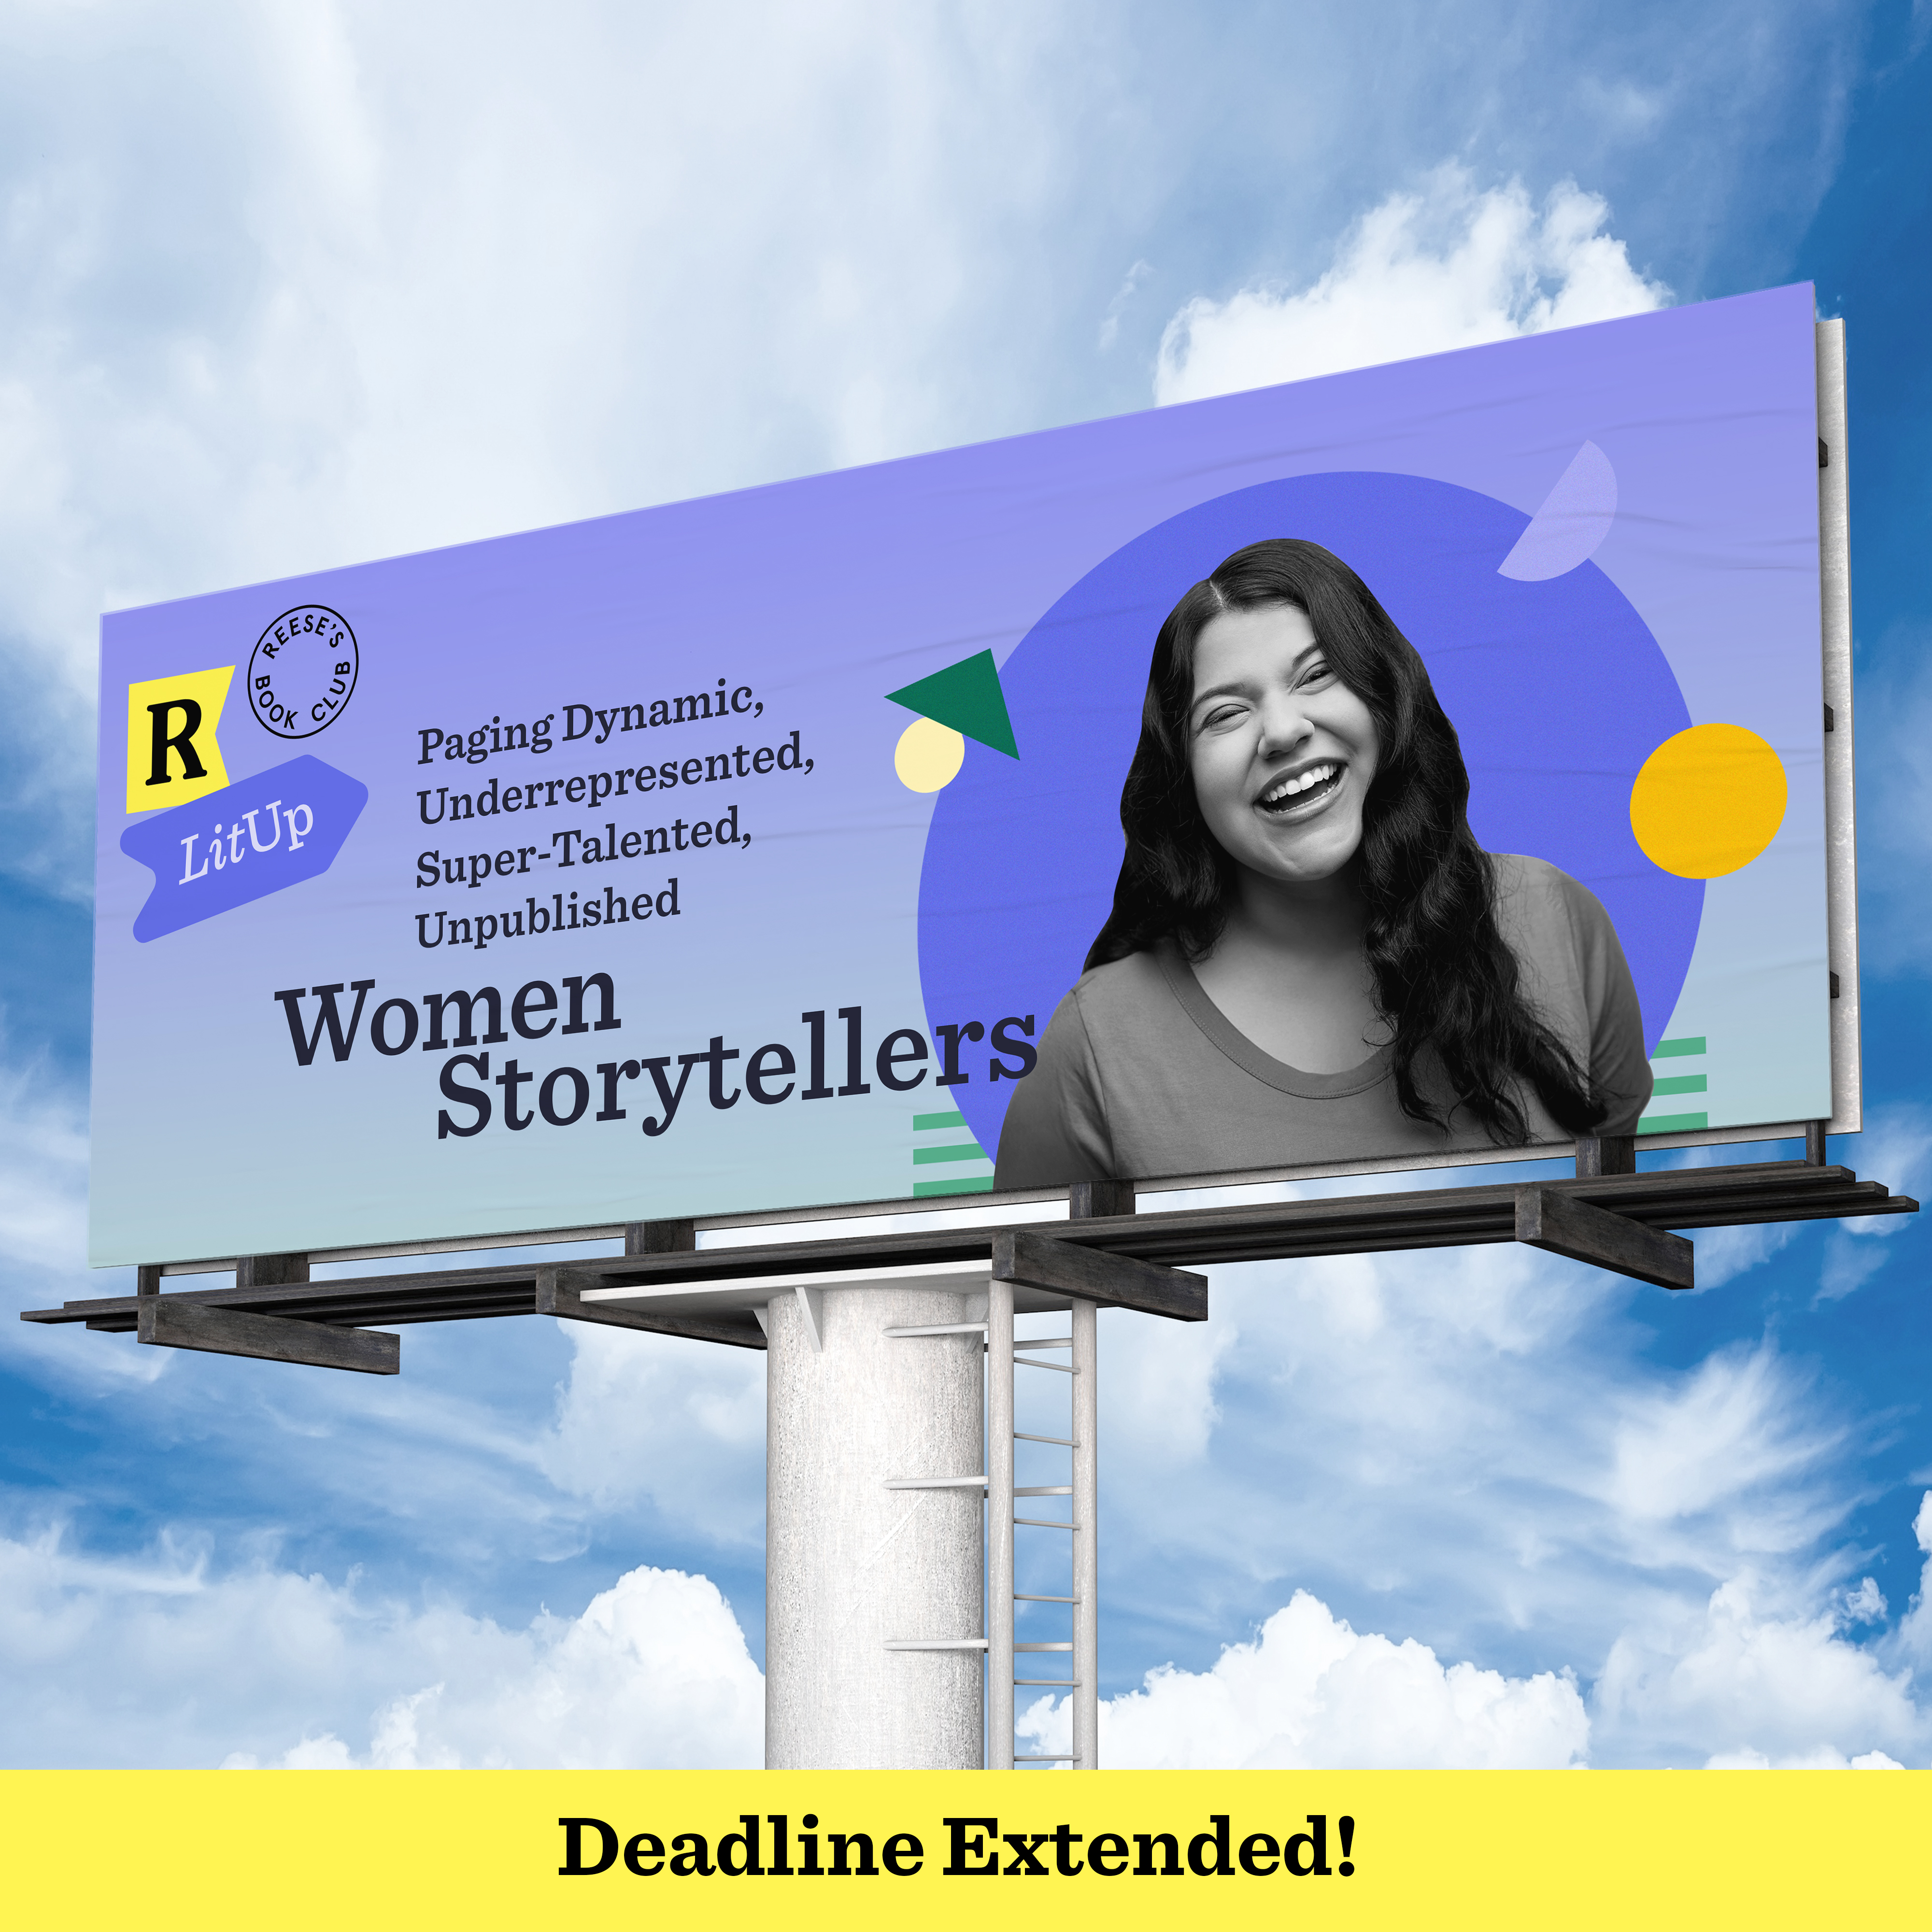 """A billboard in front of a clear blue sky features a black and white photo of a woman laughing. Beneath the image, text says """"Deadline extended!"""""""